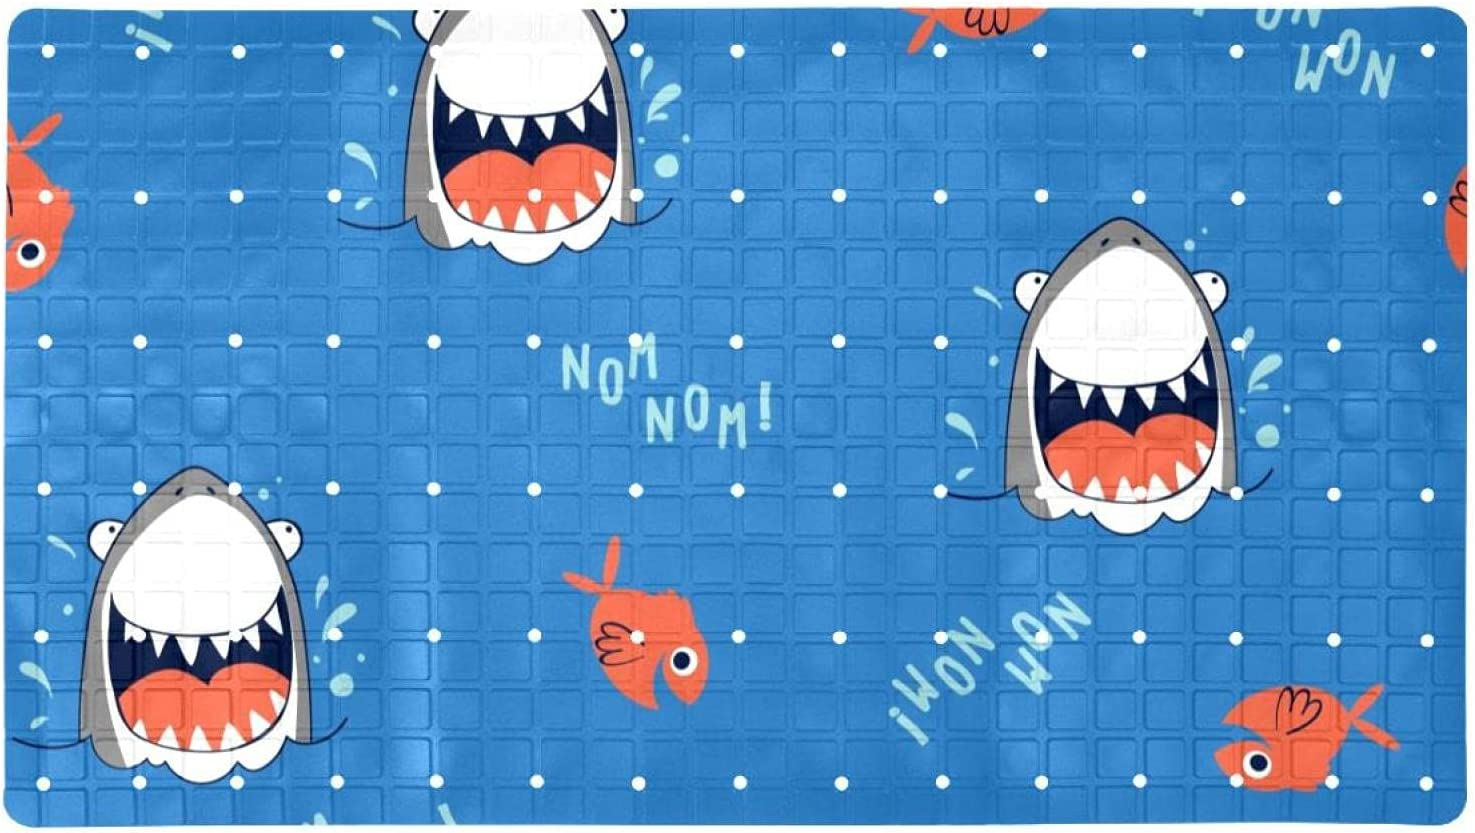 Manufacturer regenerated product Bath Tub Shower Directly managed store Mat 15.7x27.9 inches Happy Shark Laugh Fish Cute